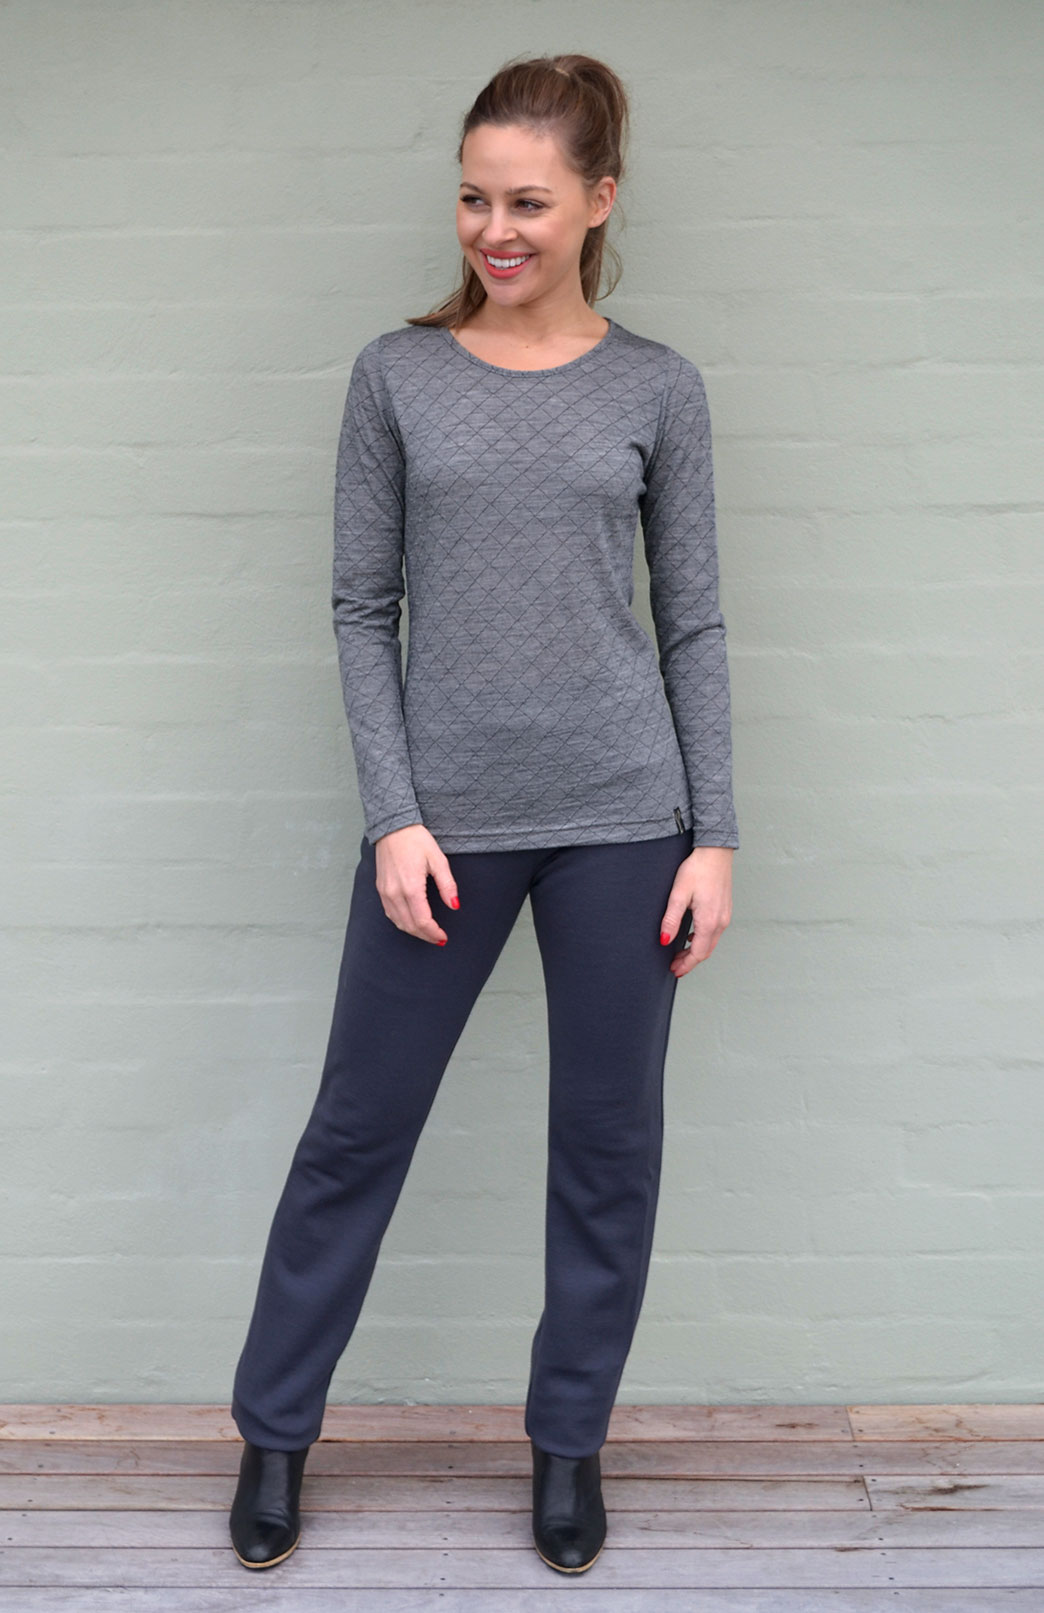 Round Neck Top - Patterned - Women's Black and Grey Patterned Long Sleeved Merino Wool Thermal Fashion Top - Smitten Merino Tasmania Australia